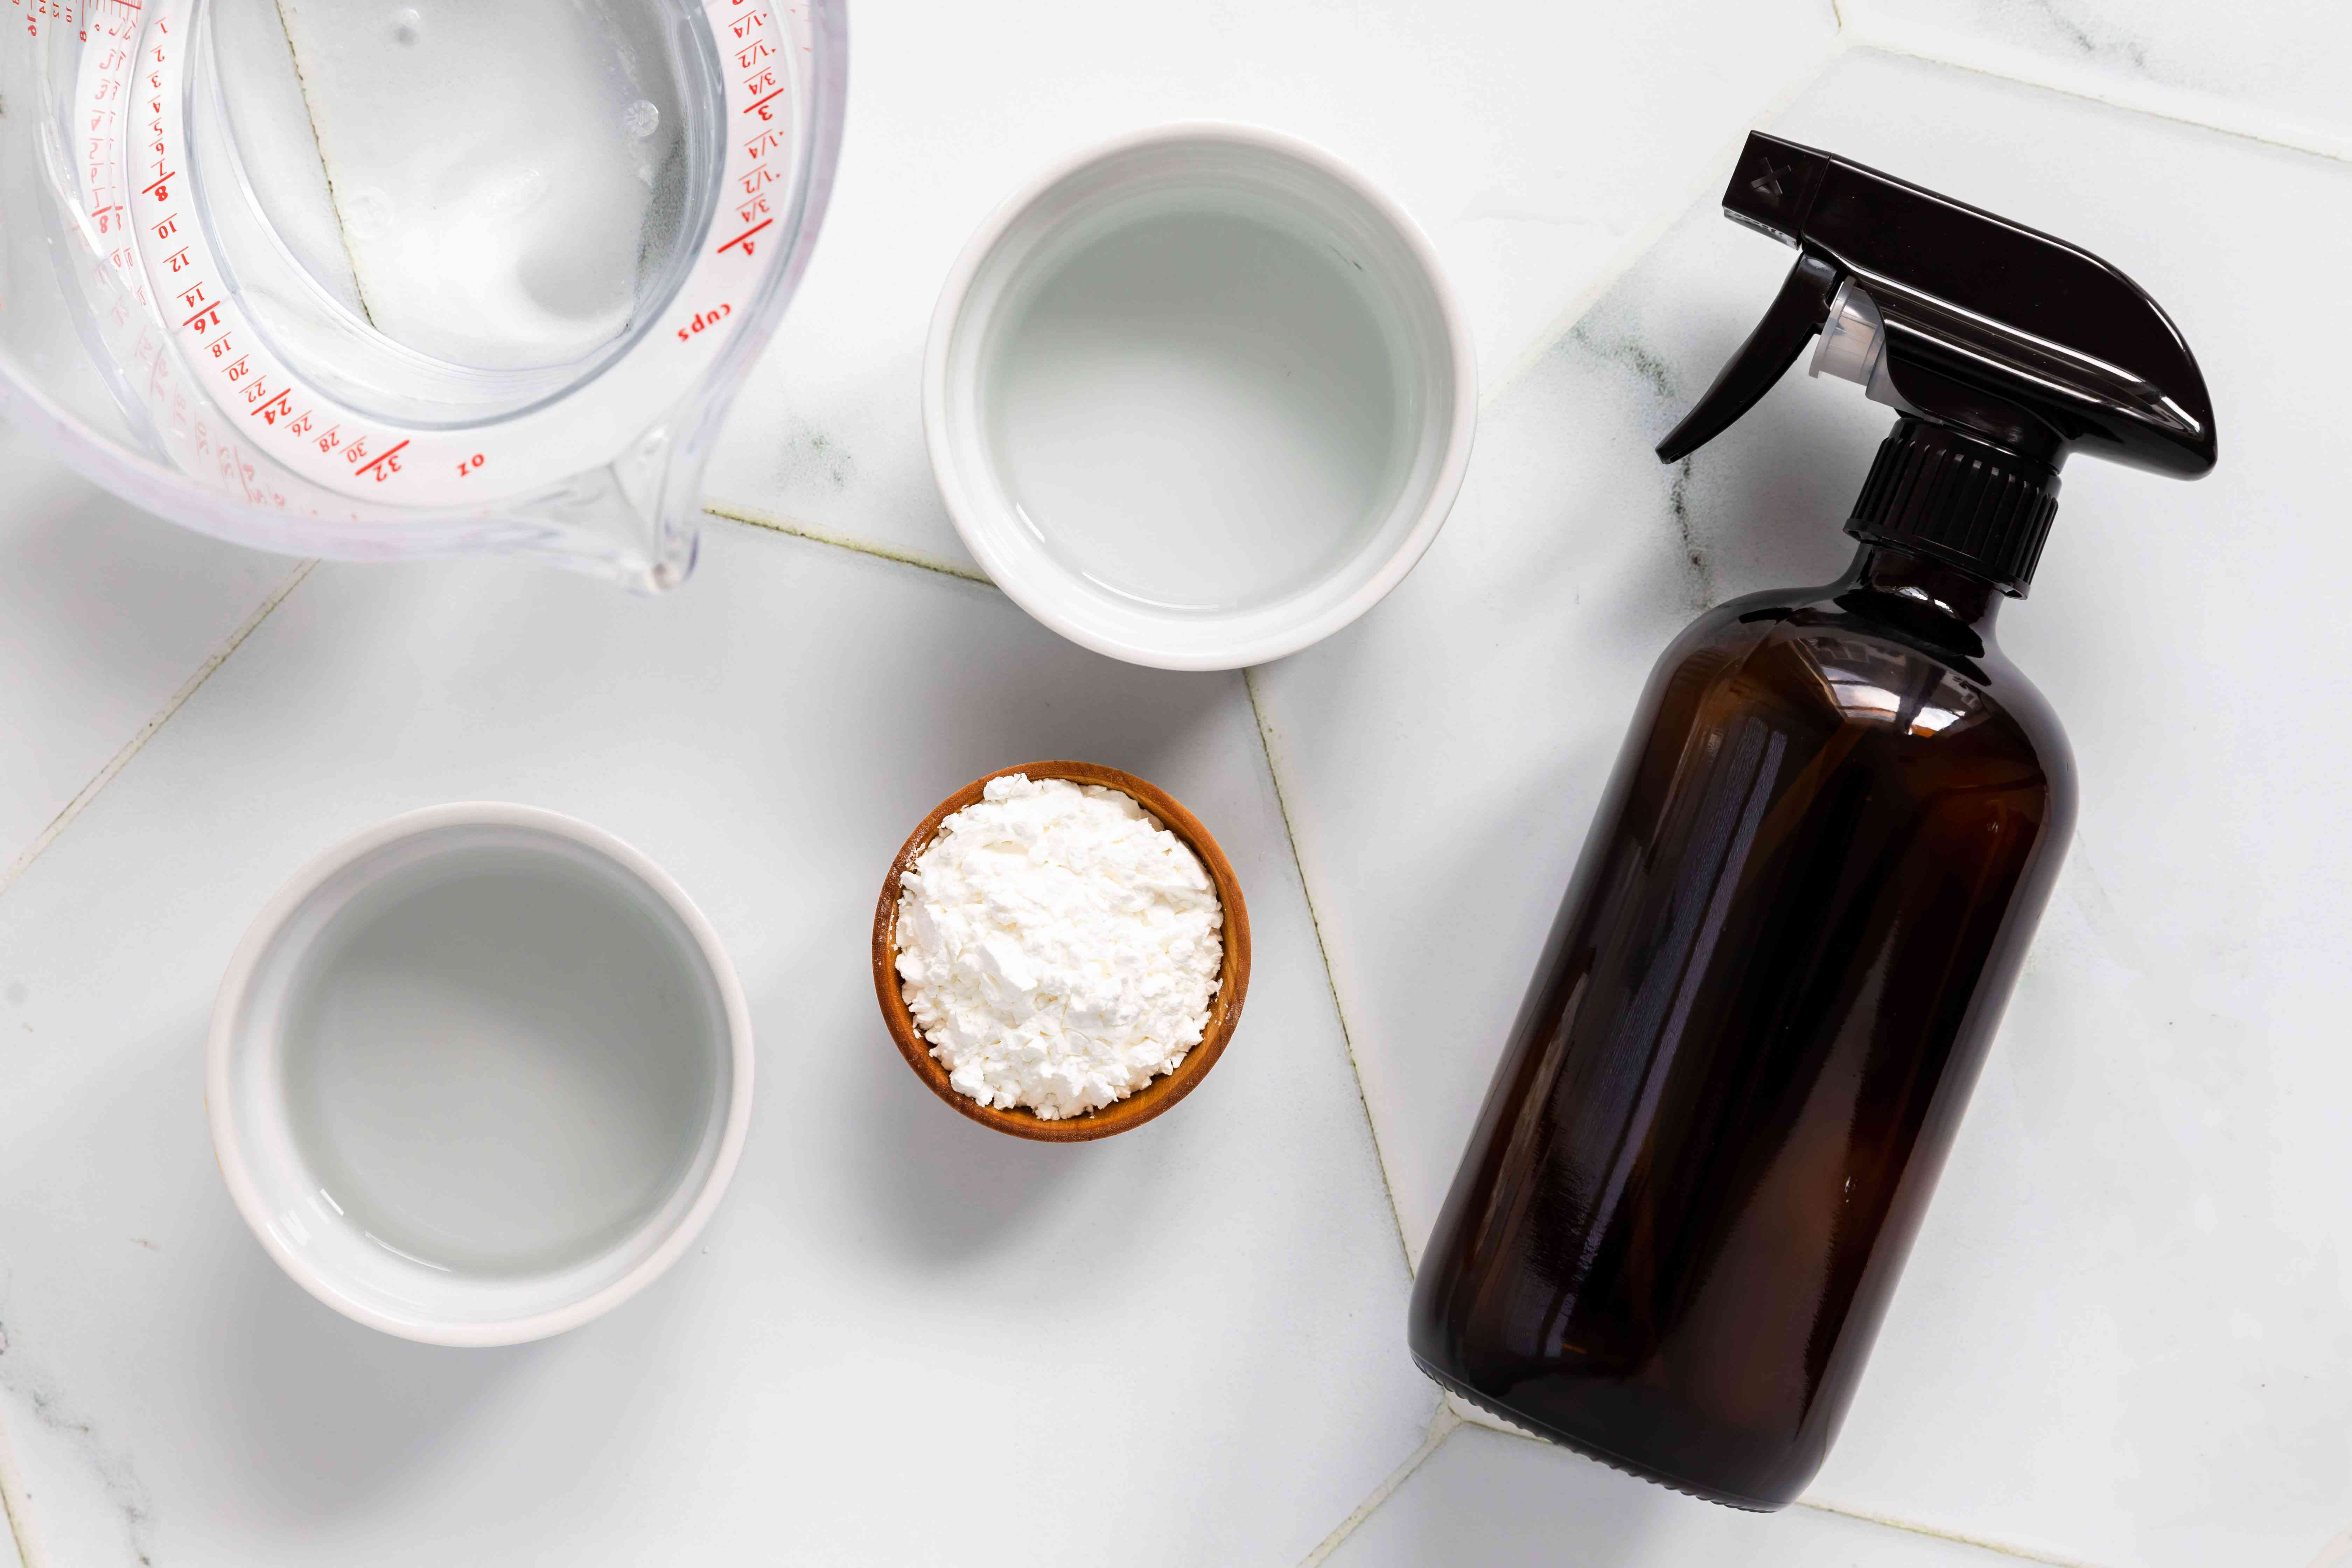 Ingredients for cornstarch cleaning spray